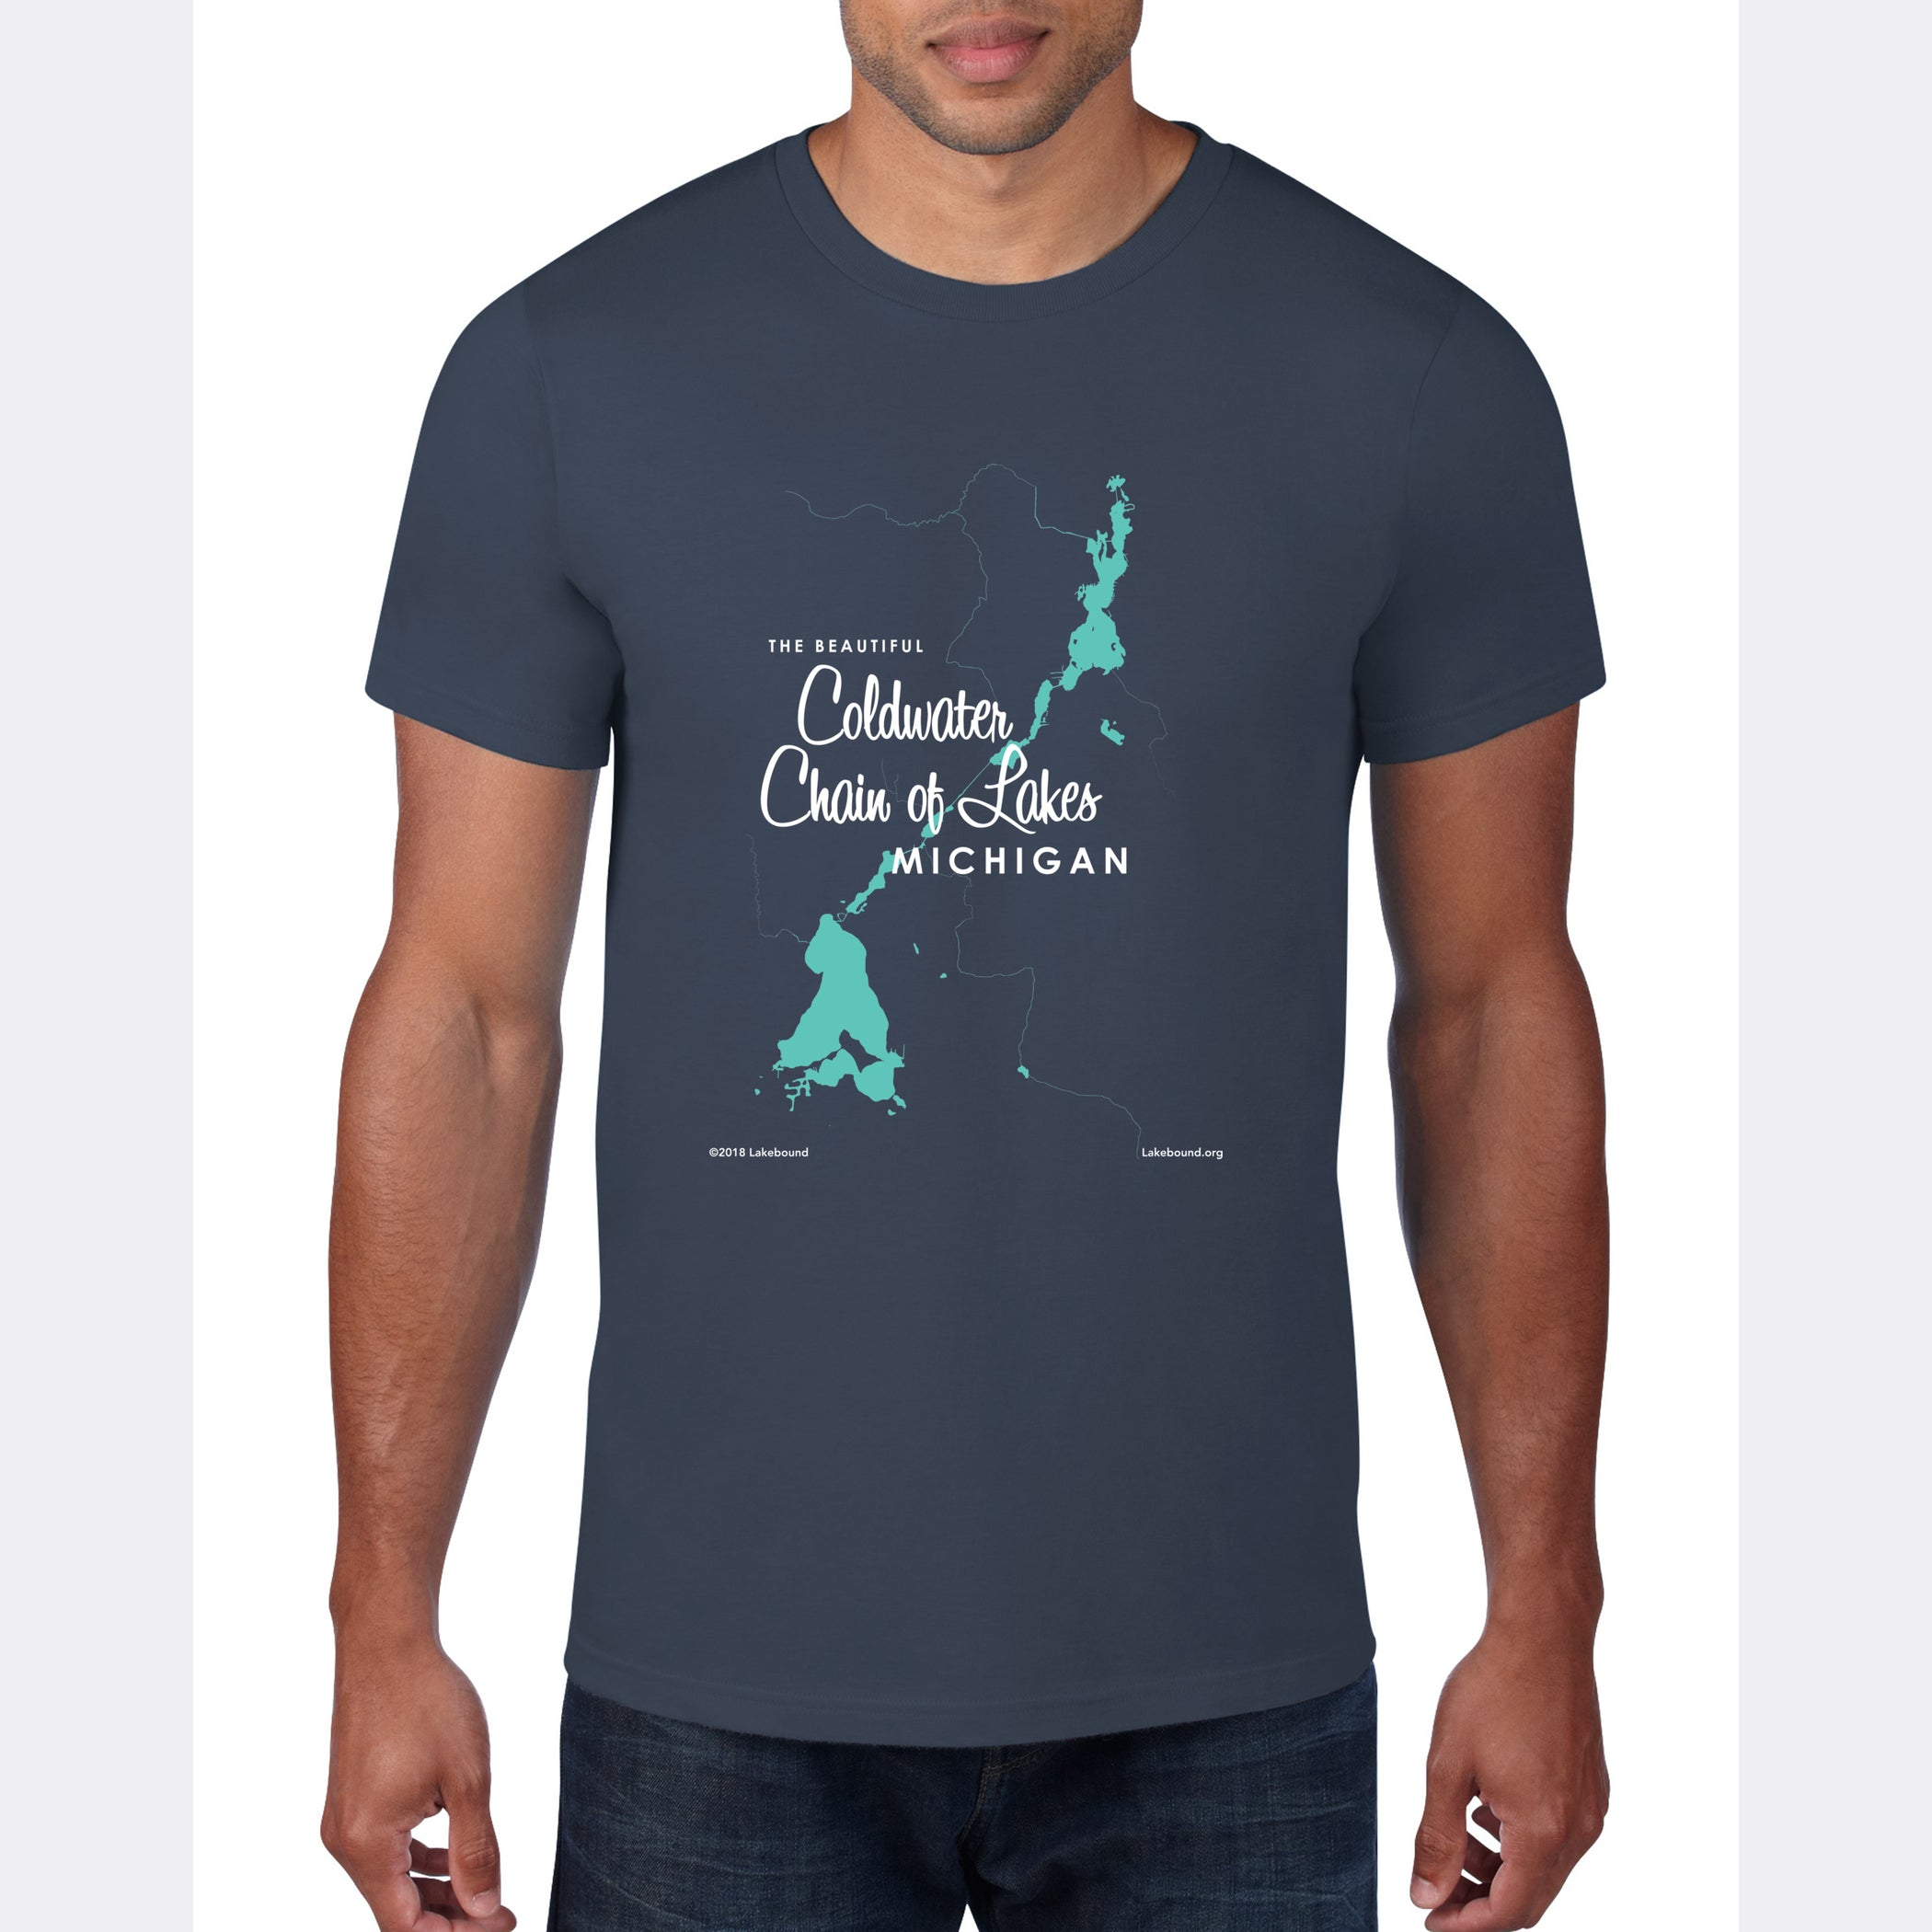 Coldwater Chain of Lakes Michigan, T-Shirt